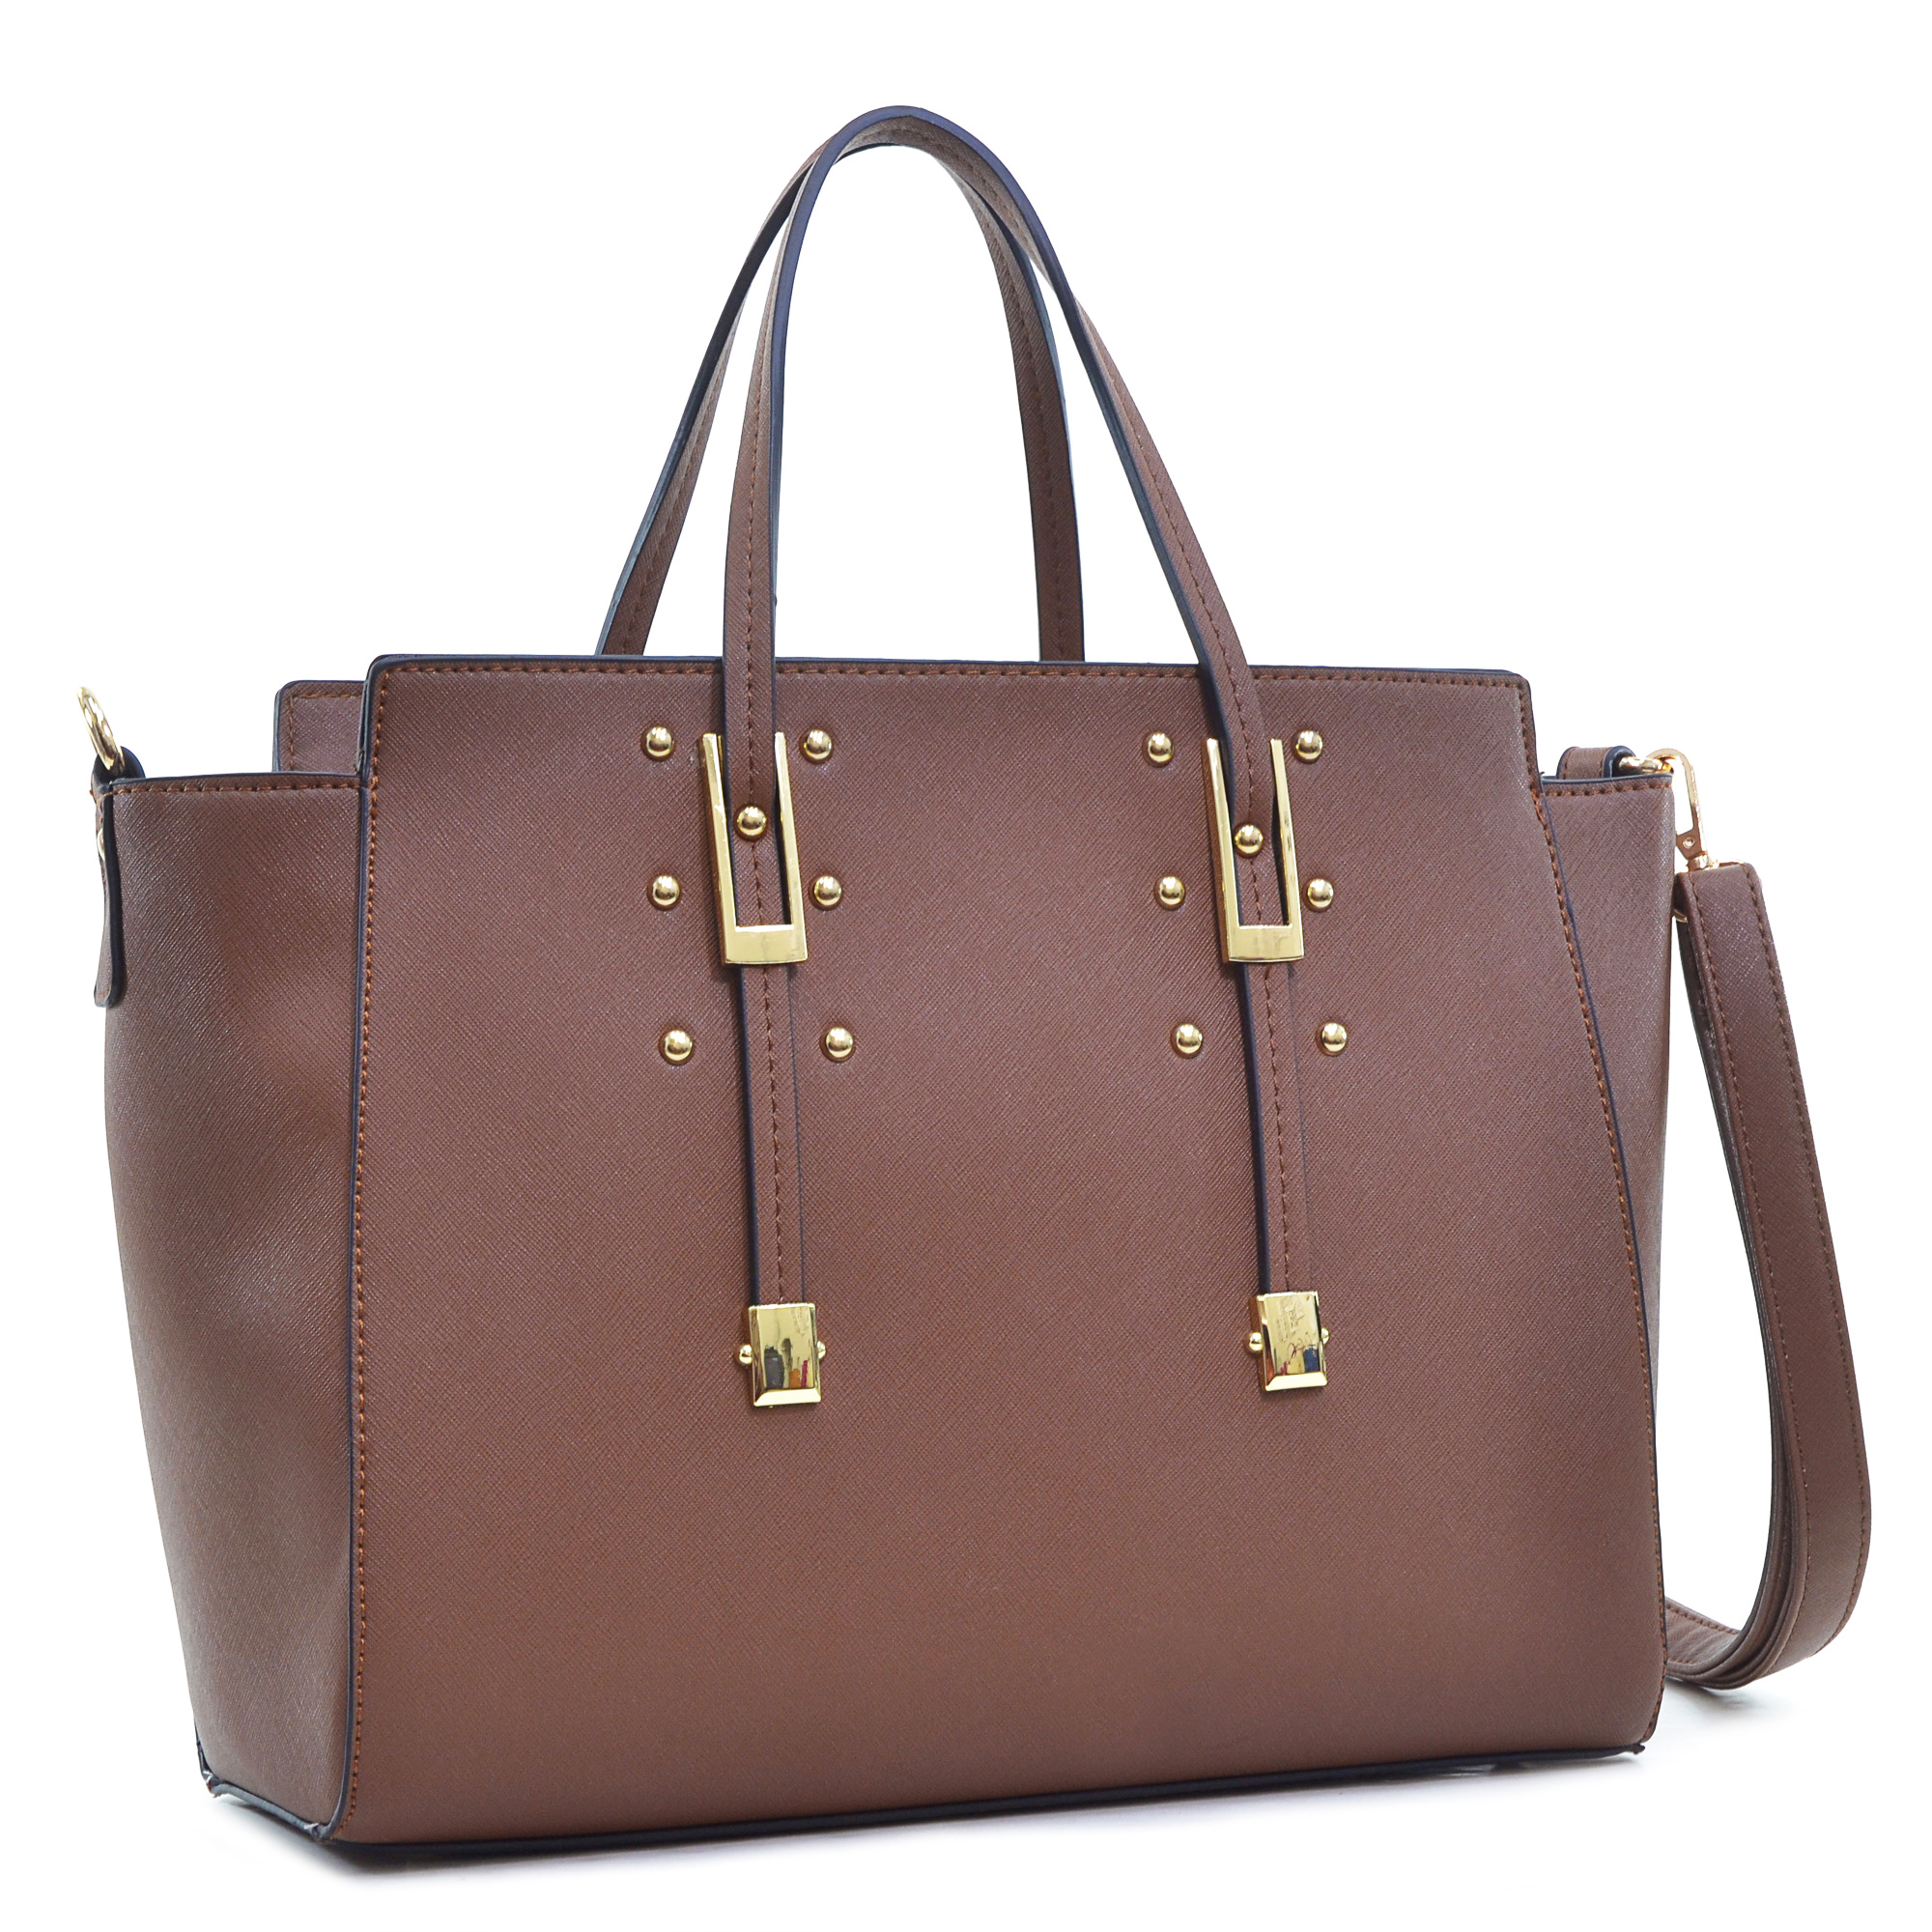 Dasein Elegant Buckle Strap Shoulder Bag, Tote, Handbag, Tablet Bag, iPad Bag